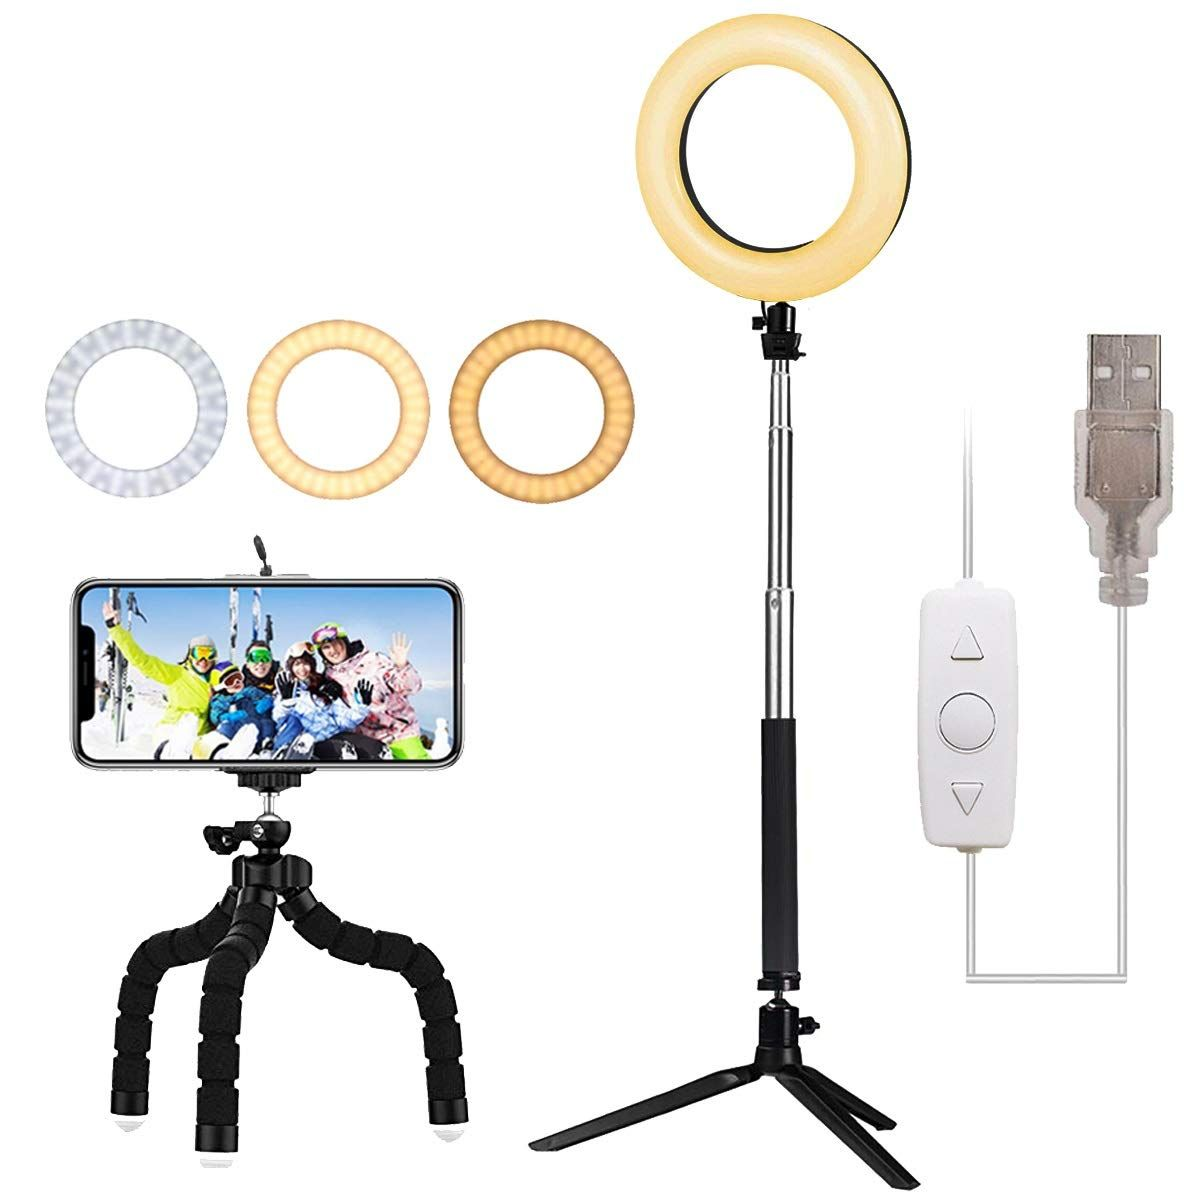 6 Led Ring Light Lambony 6500k Led Ring Light Led Ring Cell Phone Holder